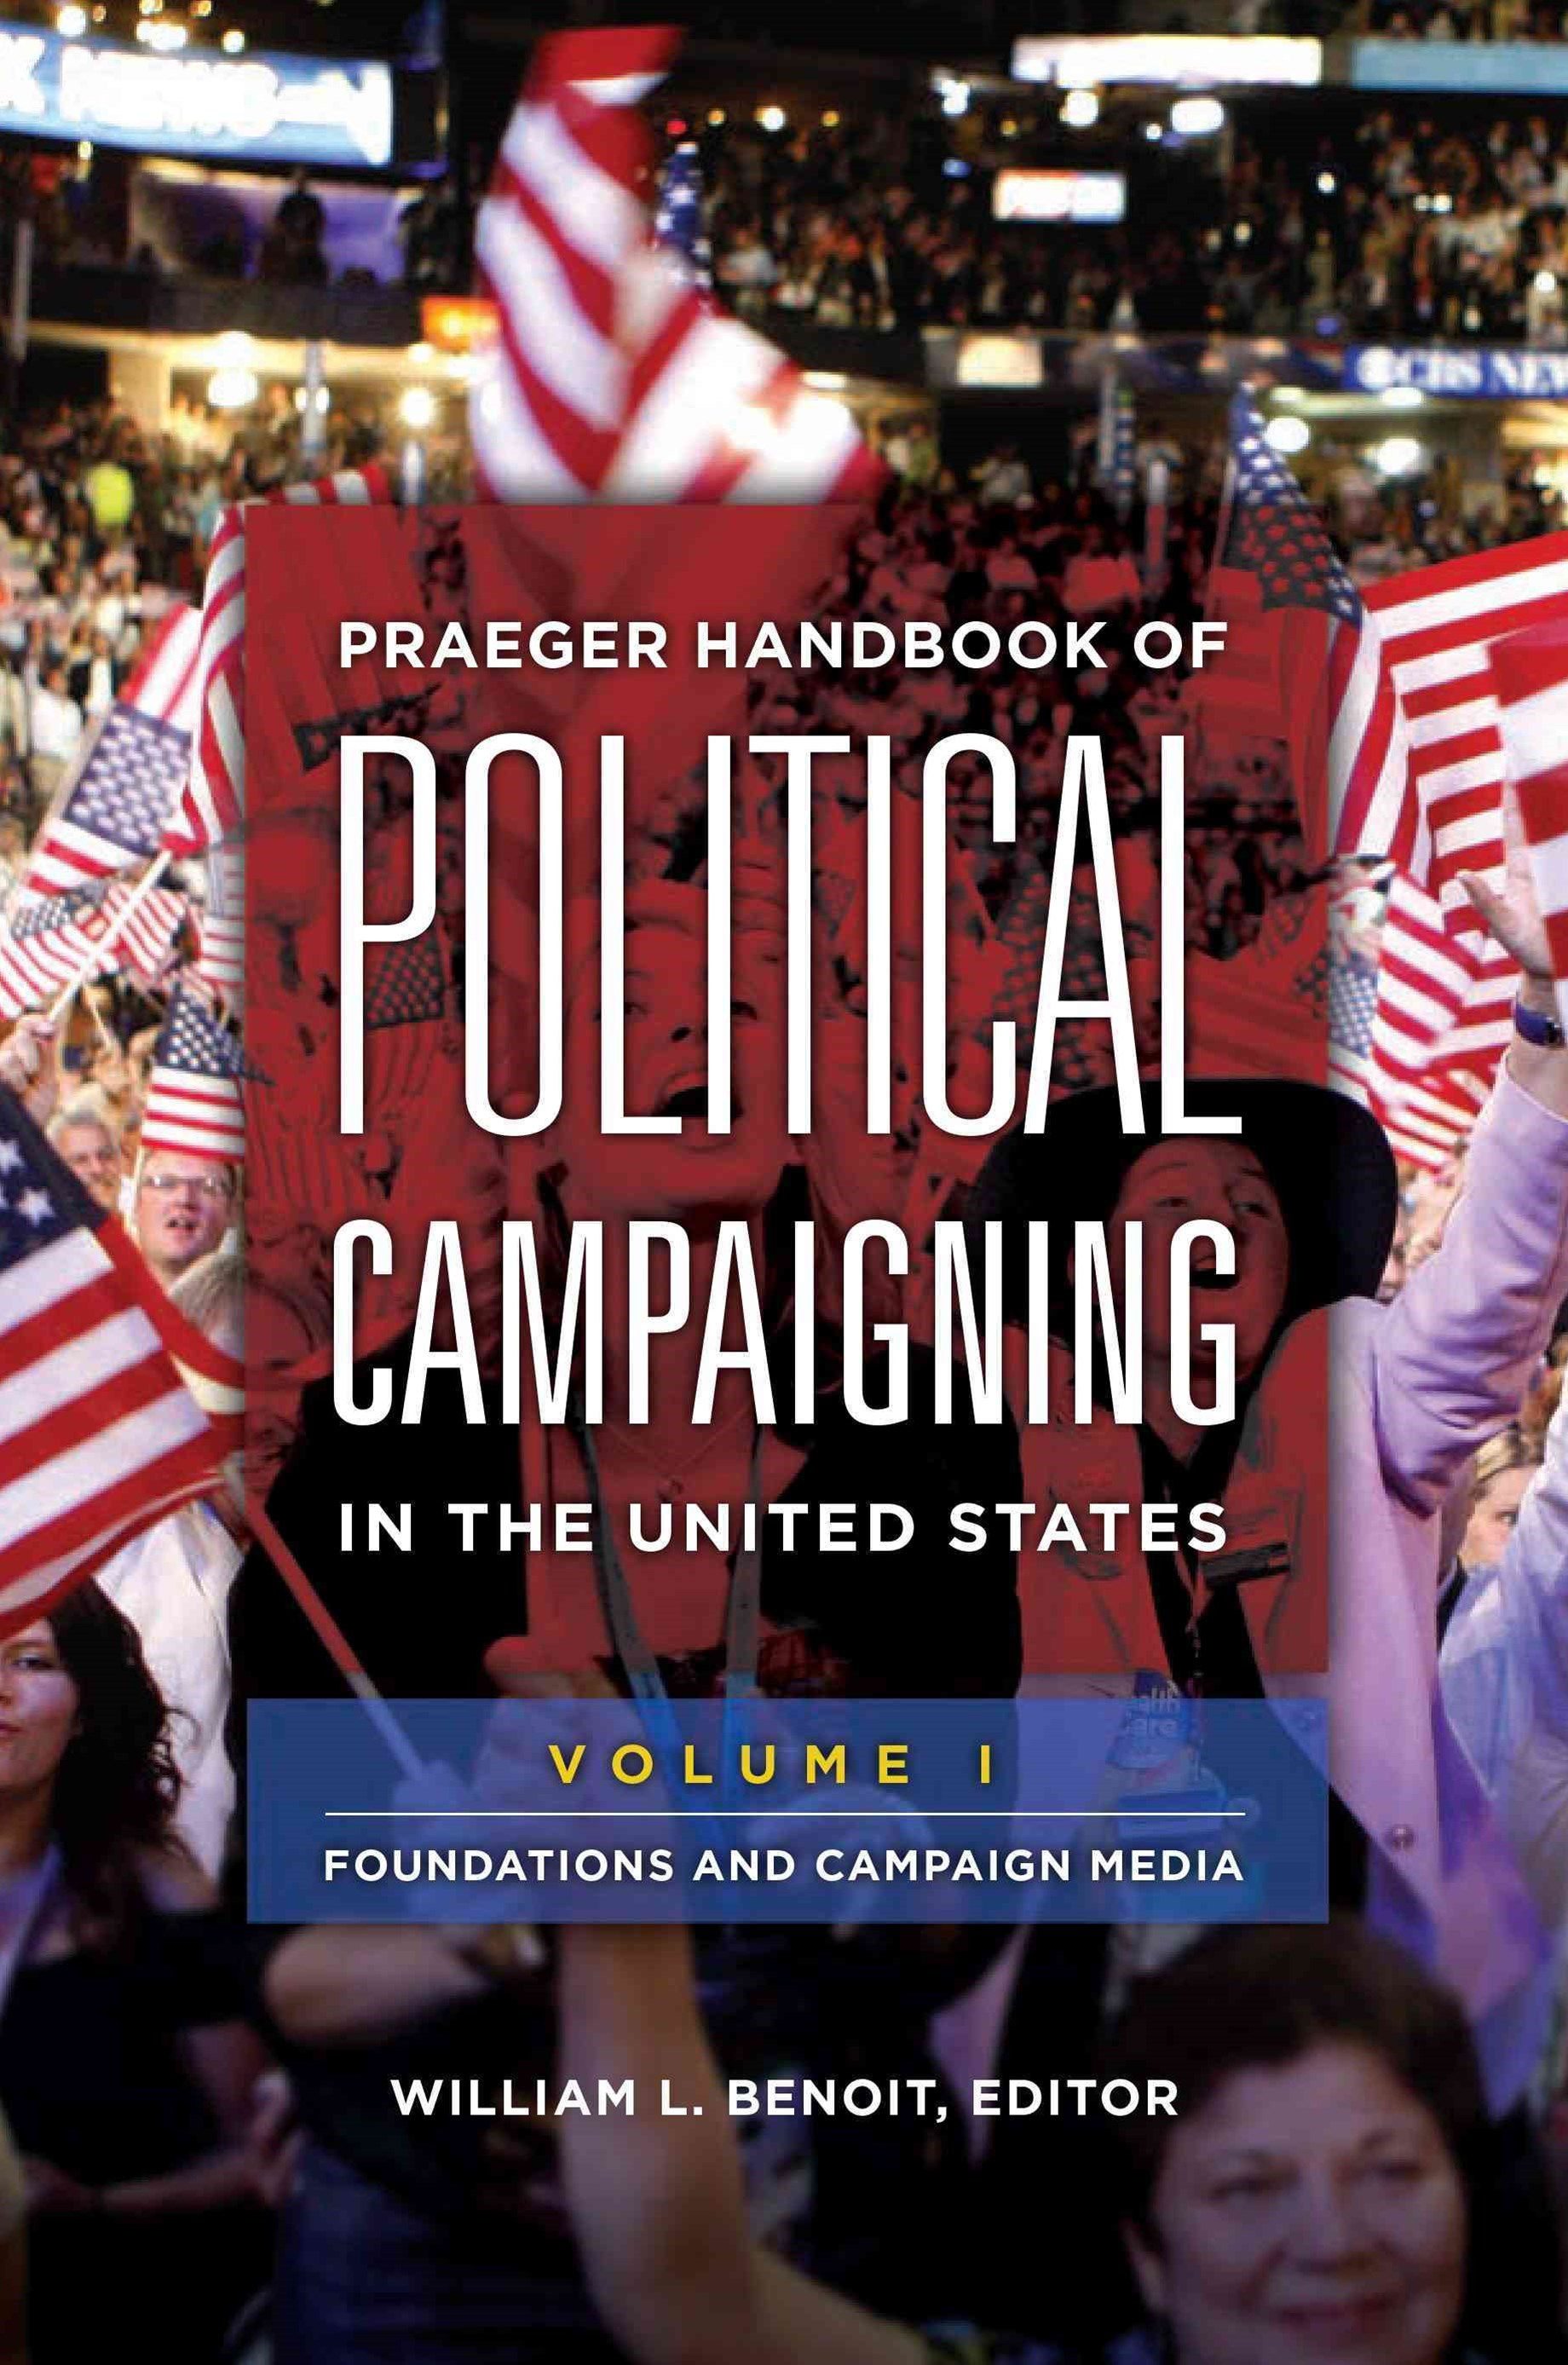 Praeger Handbook of Political Campaigning in the United States